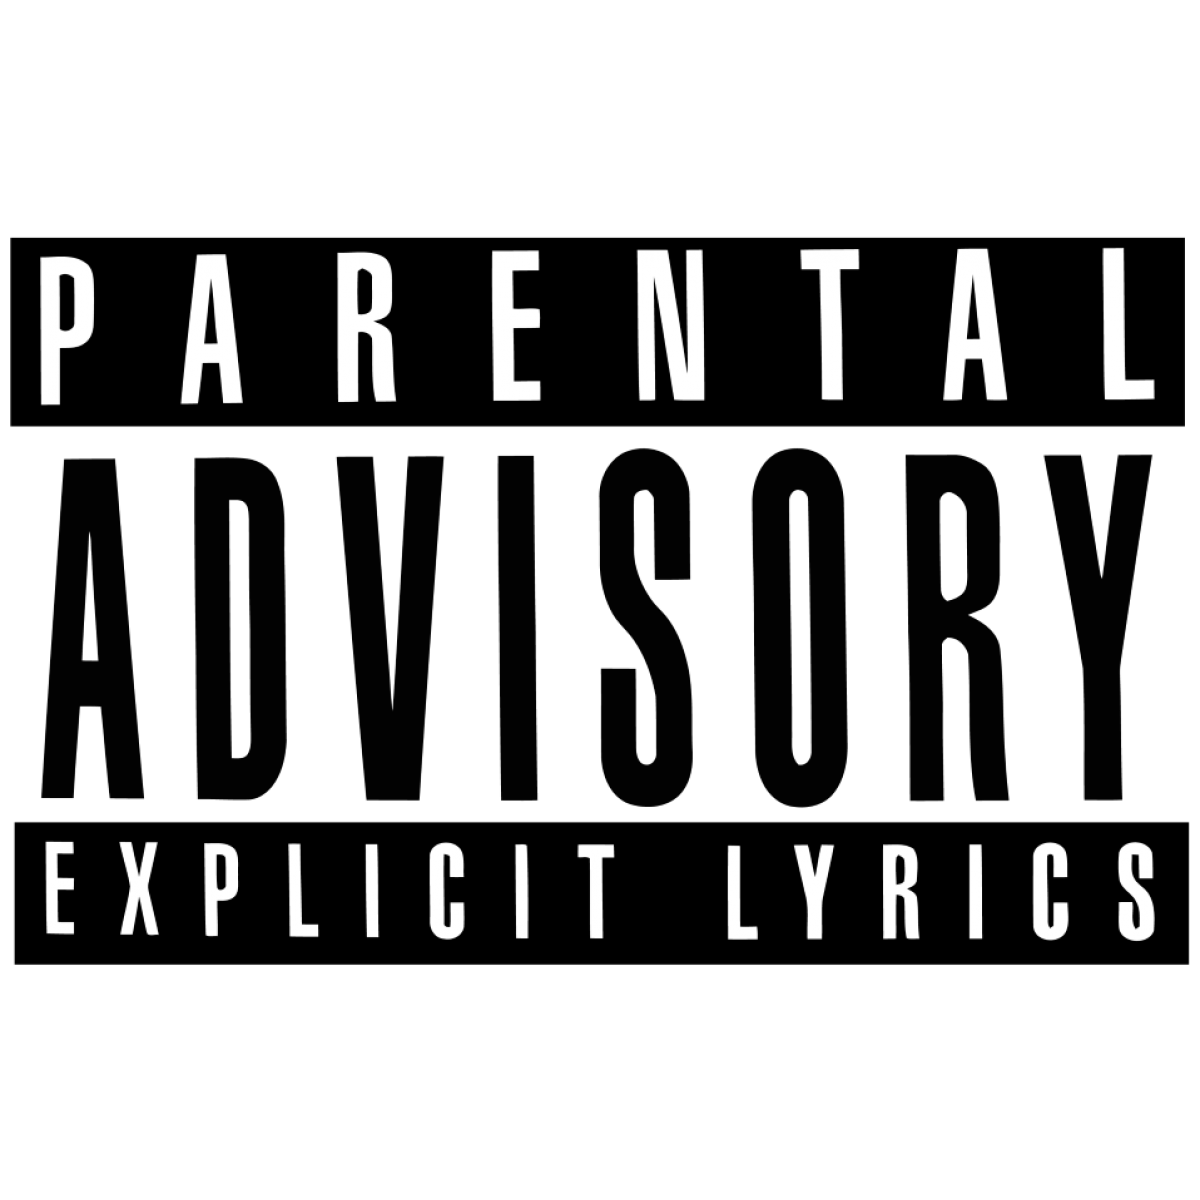 Parental Advisory Vector